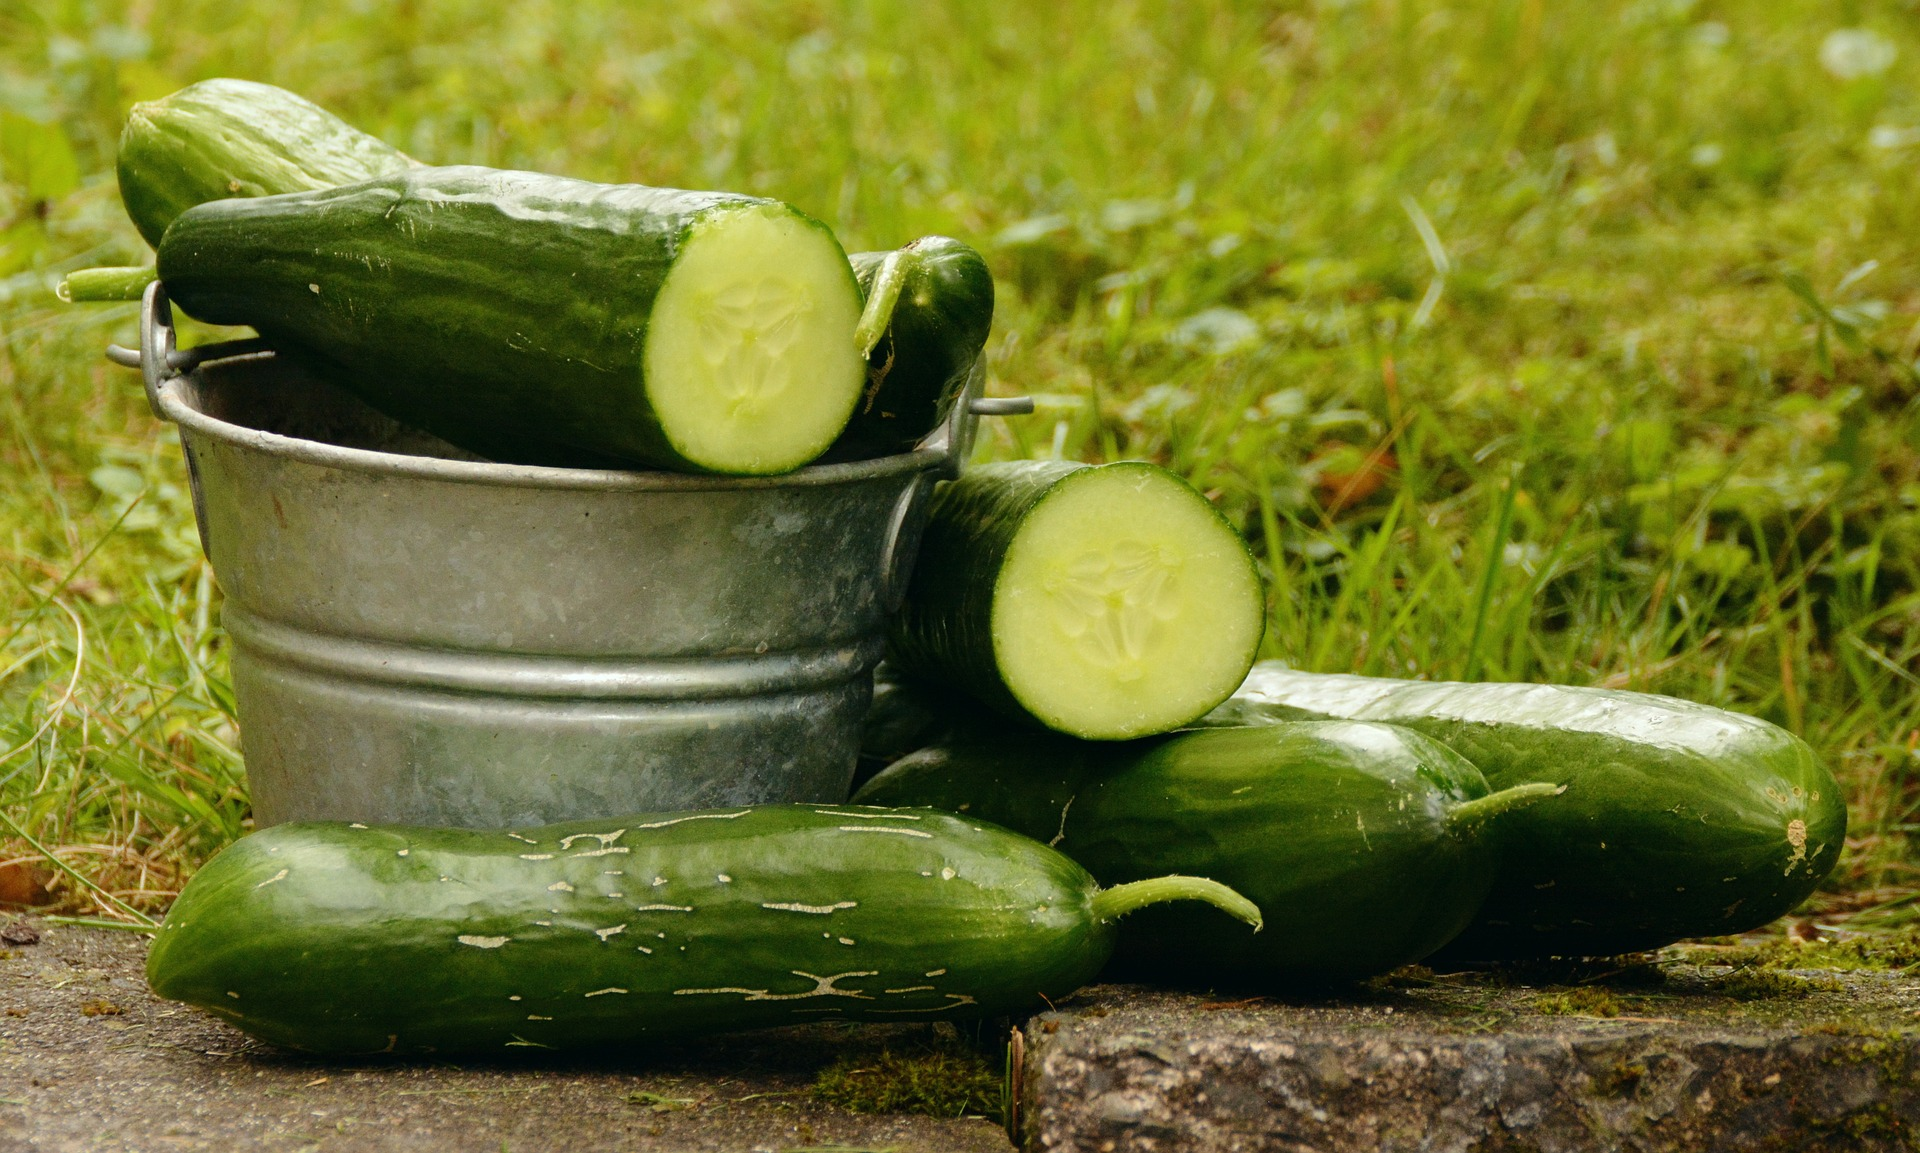 cucumbers, Cucumbers in your own backyard – pre-breeding and cultivation, Best Garden, Home And DIY Tips